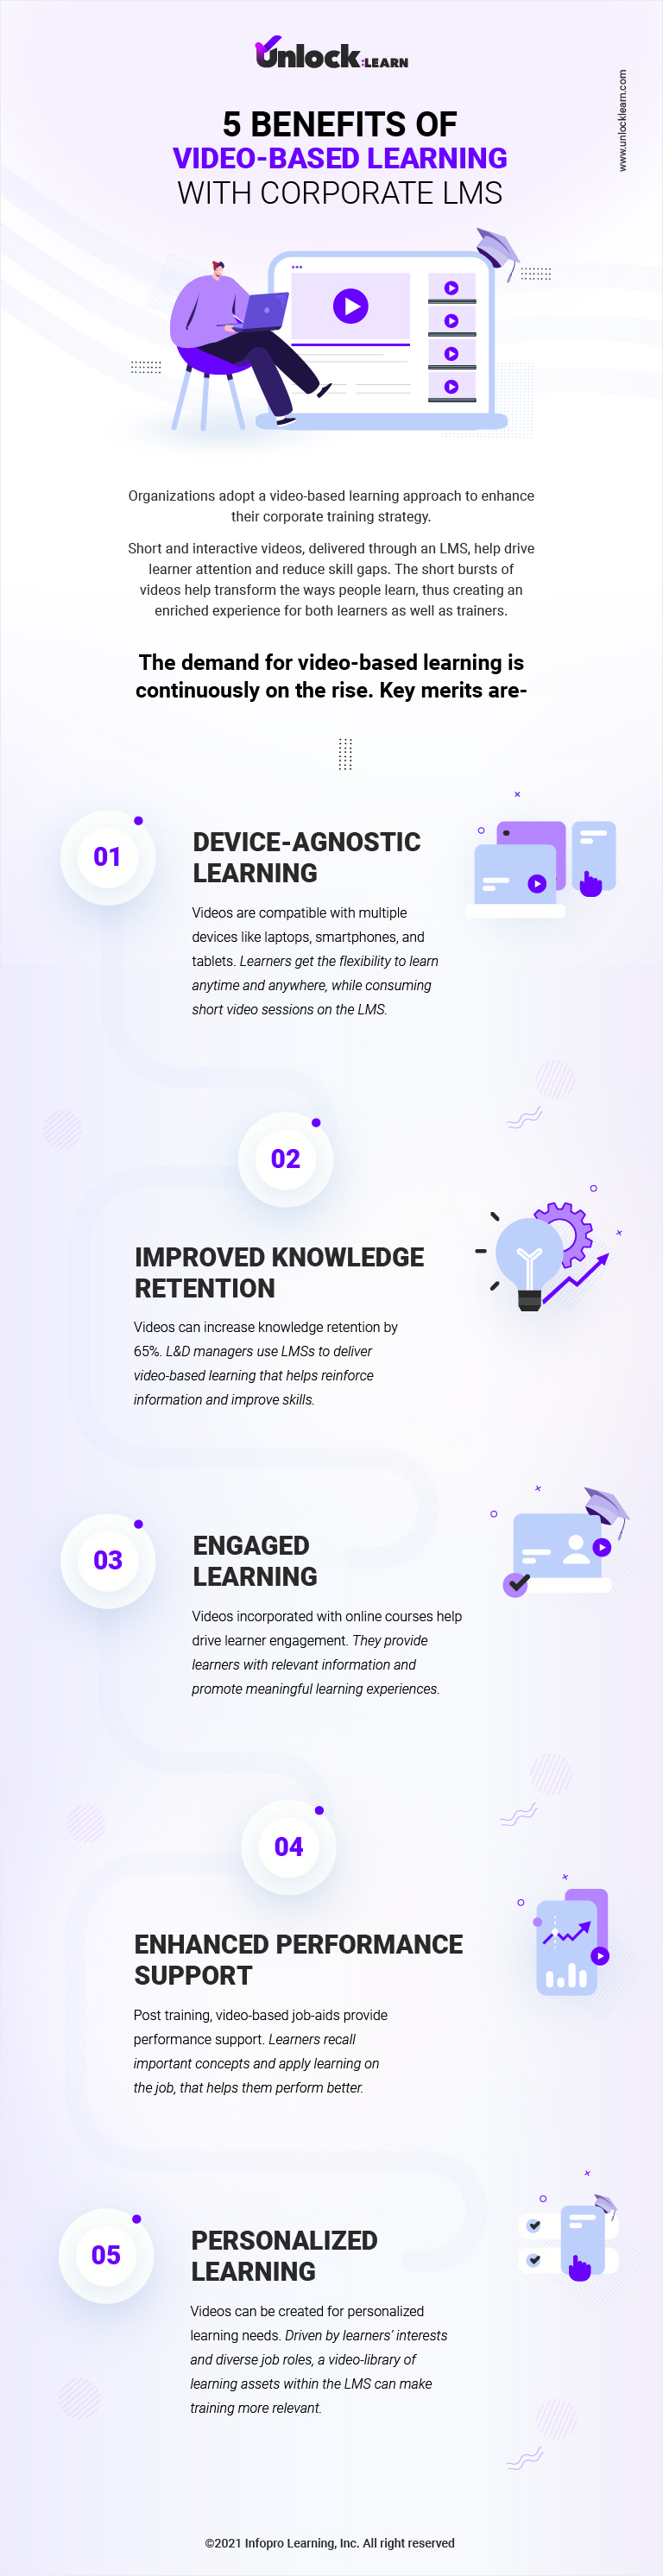 5-Benefits-of-Video-based-learning-with-Corporate-LMS_5-Benefits-of-Video-based-learning-with-Corporate-LMS-scaled